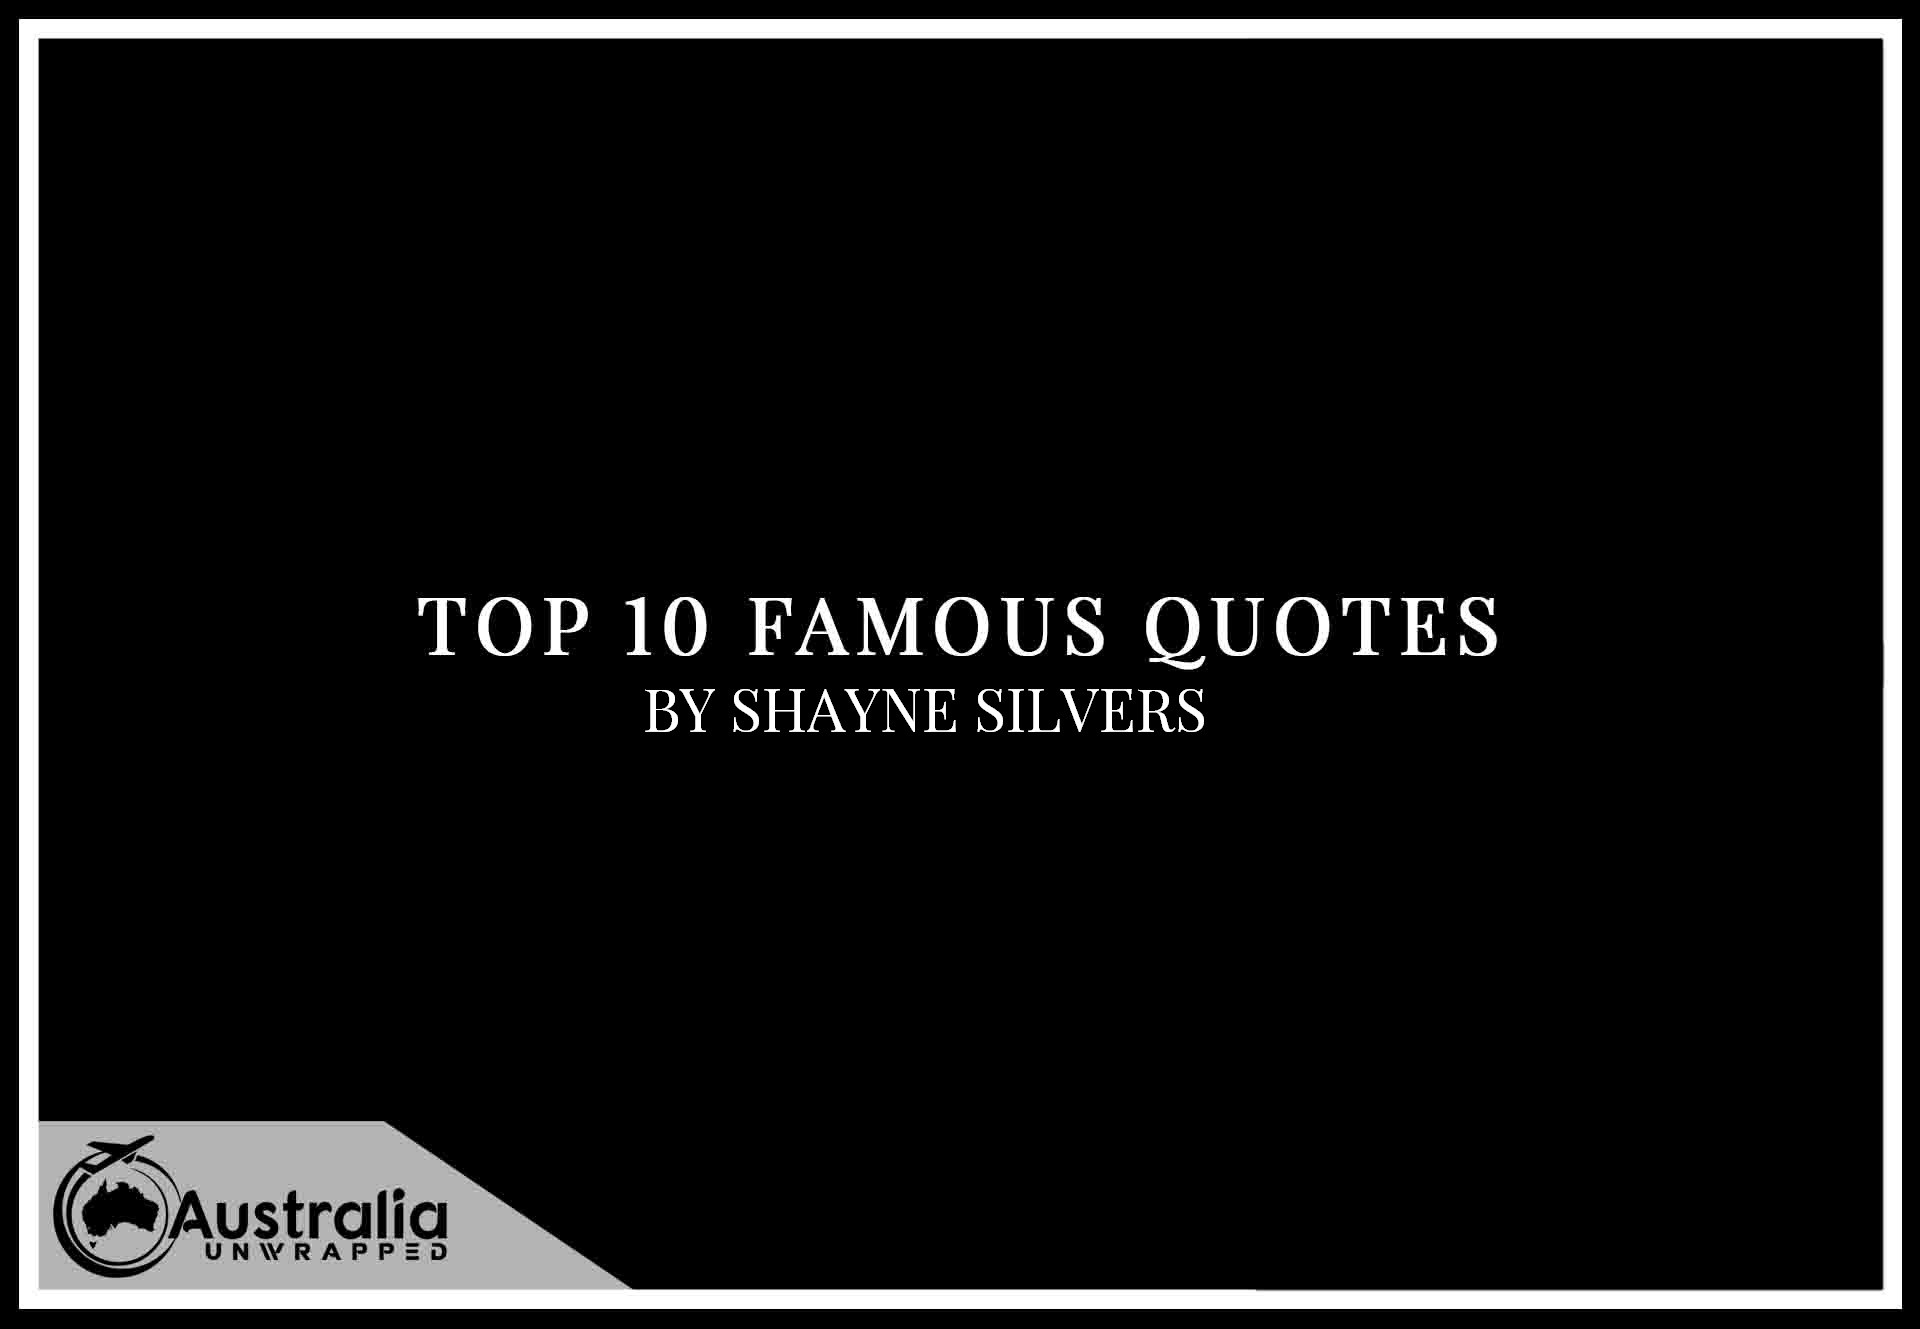 Top 10 Famous Quotes by Author Shayne Silvers